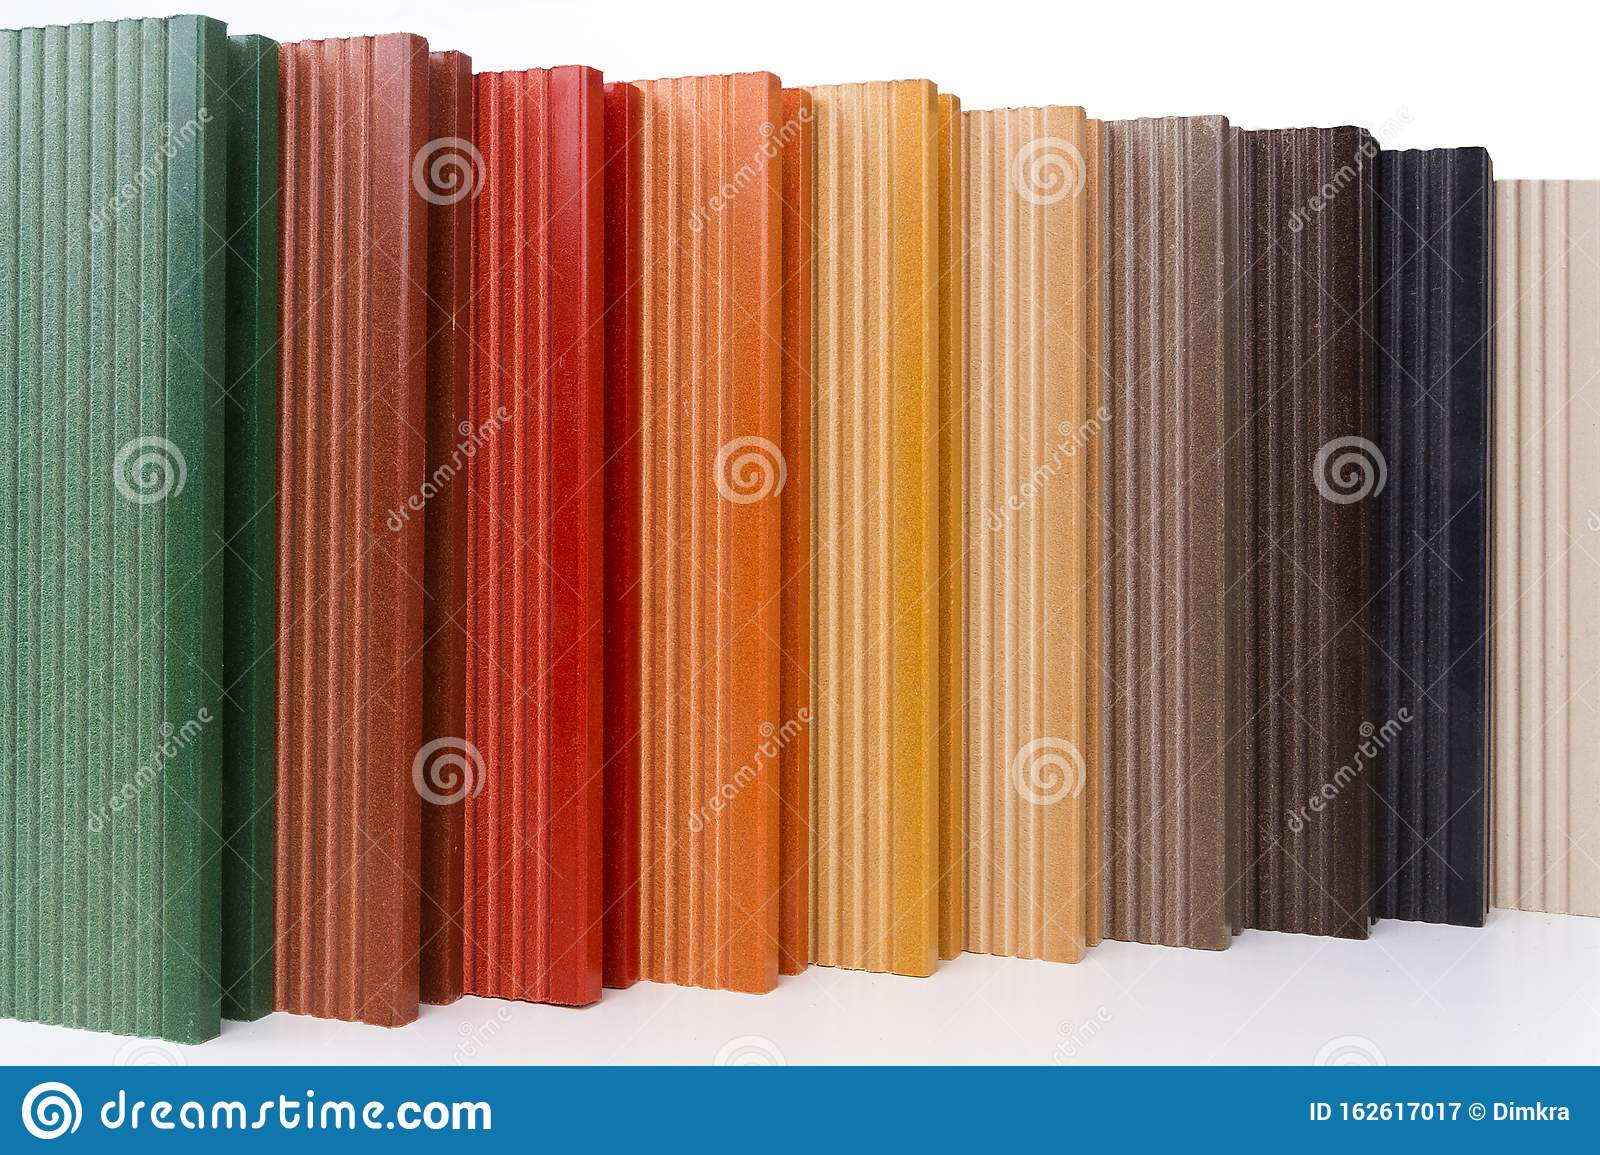 Wood Plastic Composites Material For The Construction Of Terraces